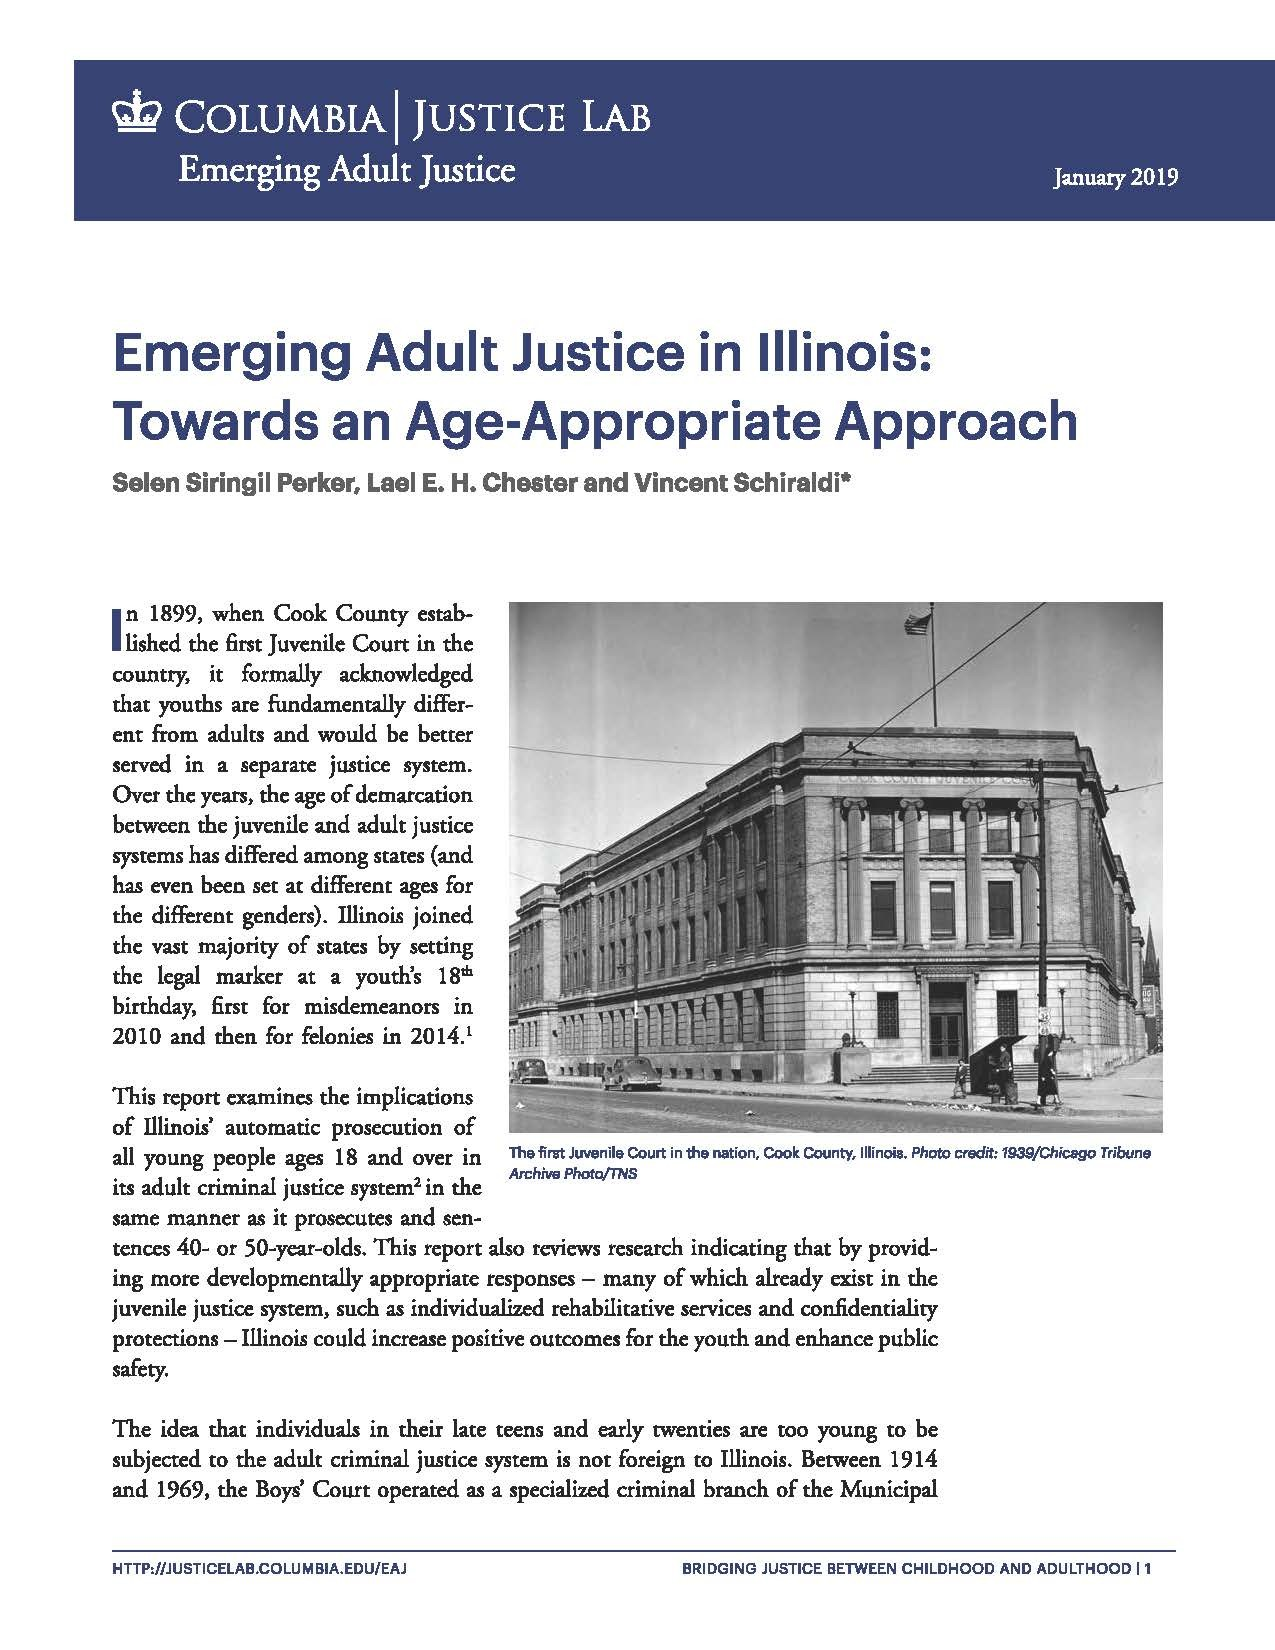 Emerging Adult Justice in Illinois: Towards an Age-Appropriate Approach